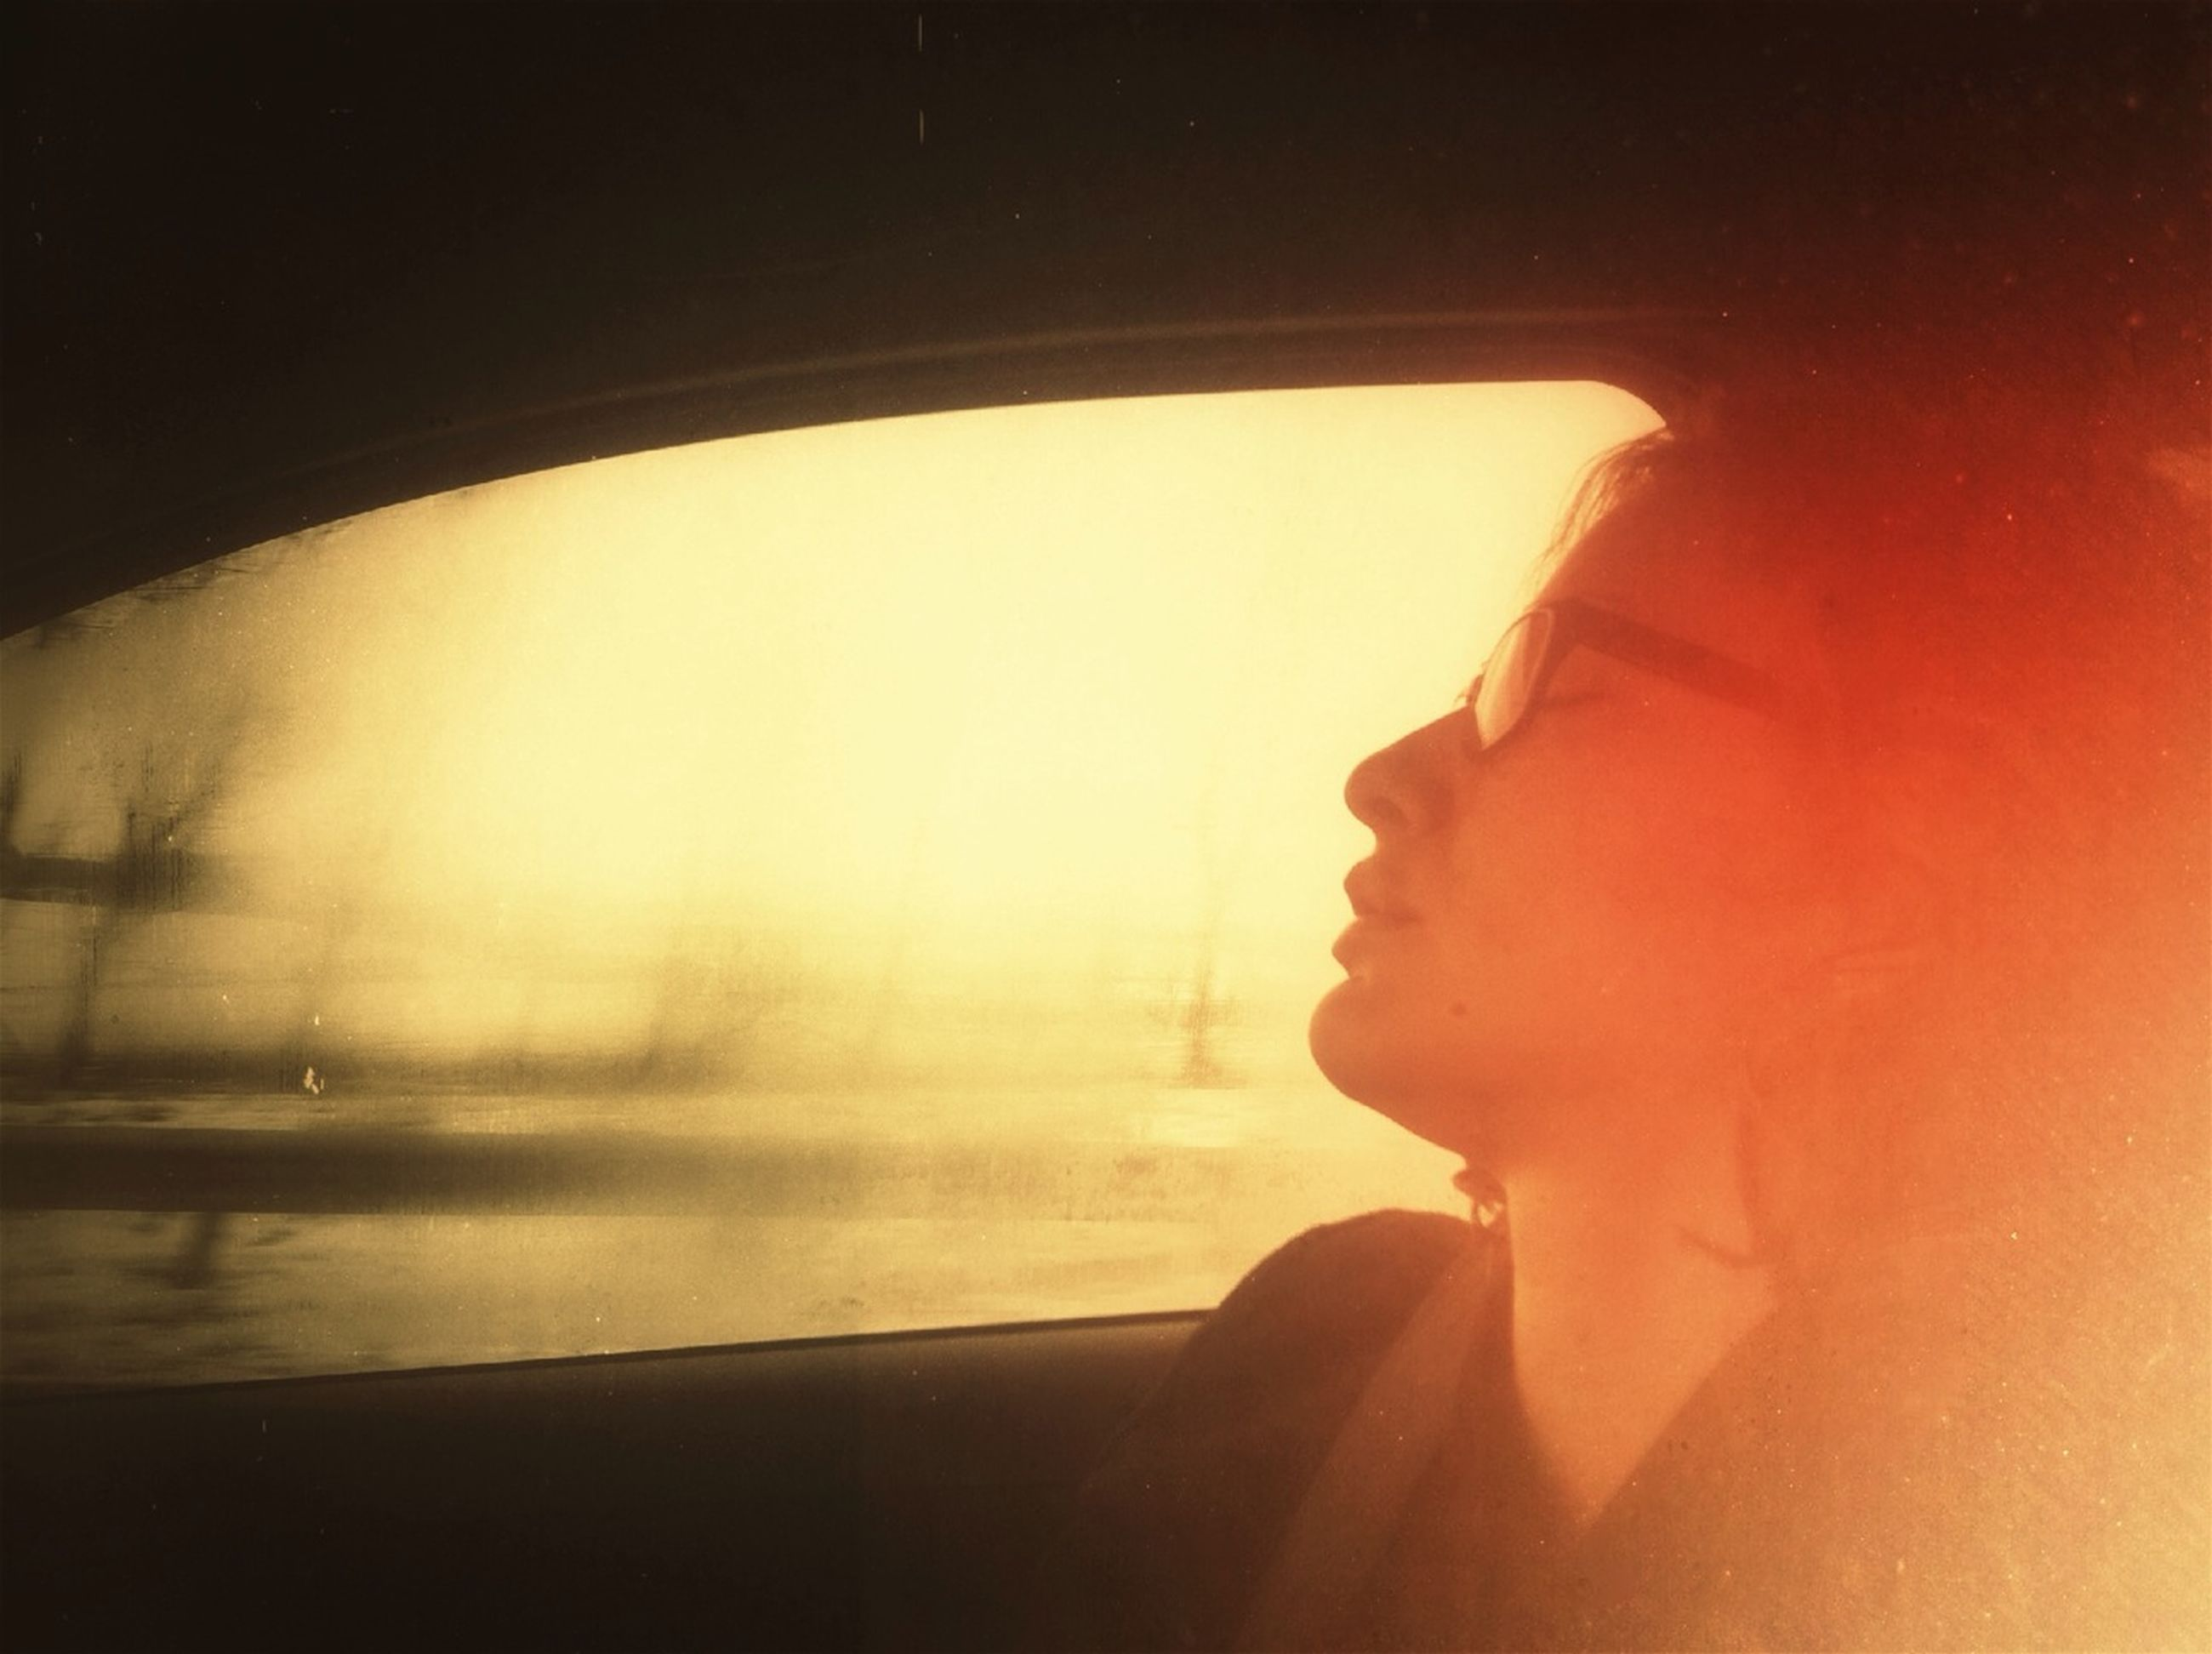 lifestyles, indoors, leisure activity, window, headshot, water, reflection, side view, young adult, part of, young women, holding, vehicle interior, person, glass - material, close-up, sunset